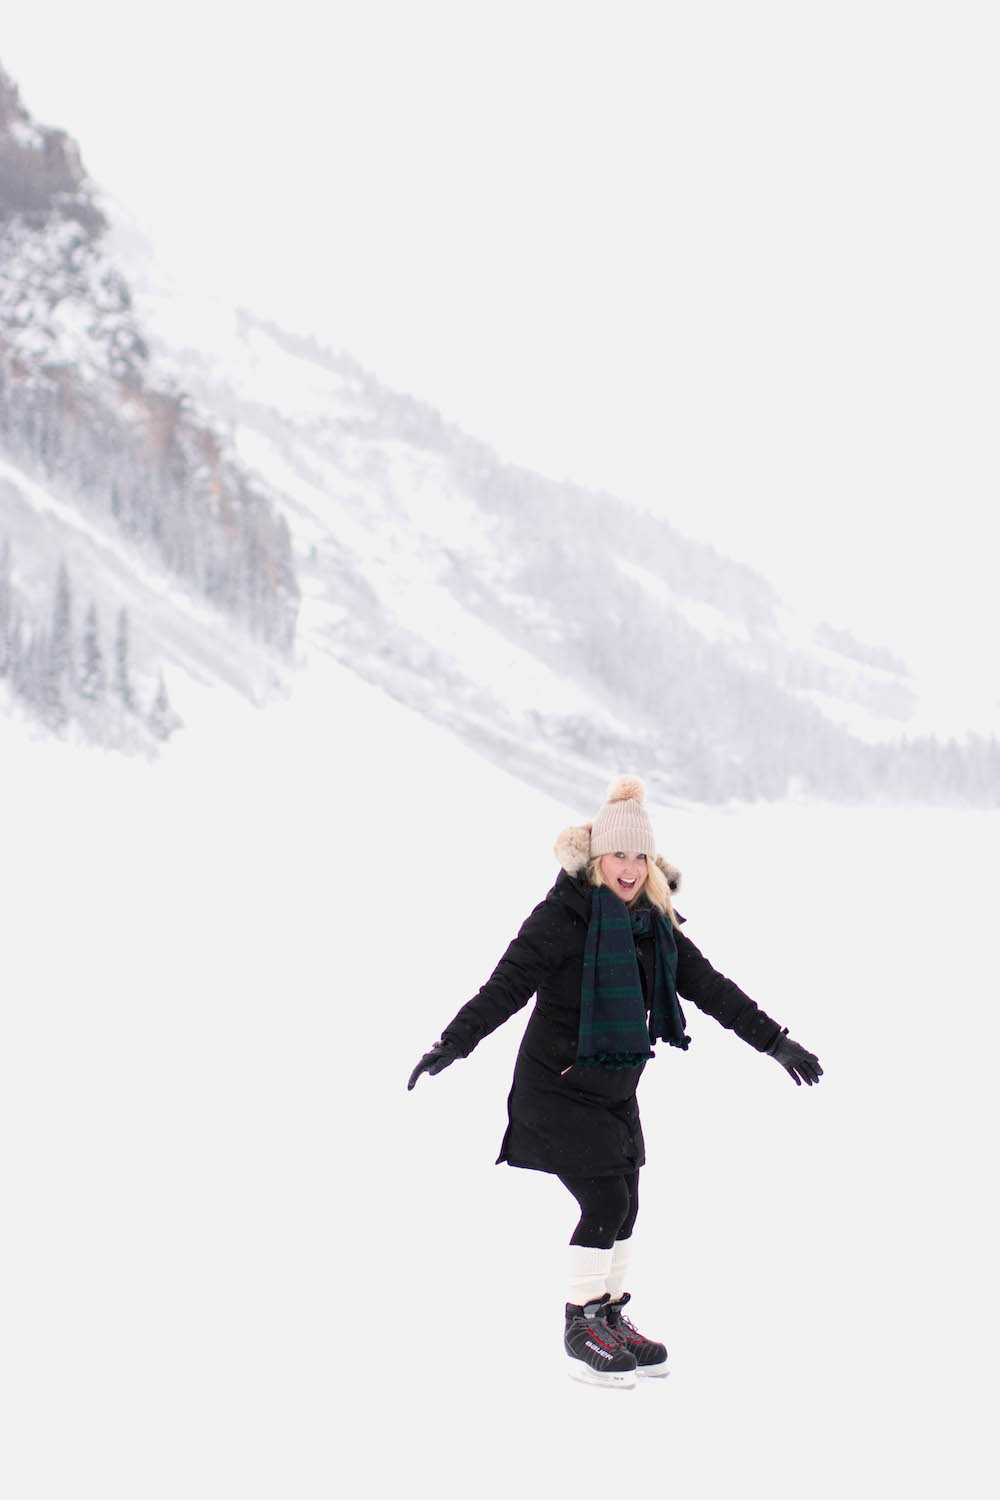 Monika Hibbs Iceskating on Lake Louise Banff